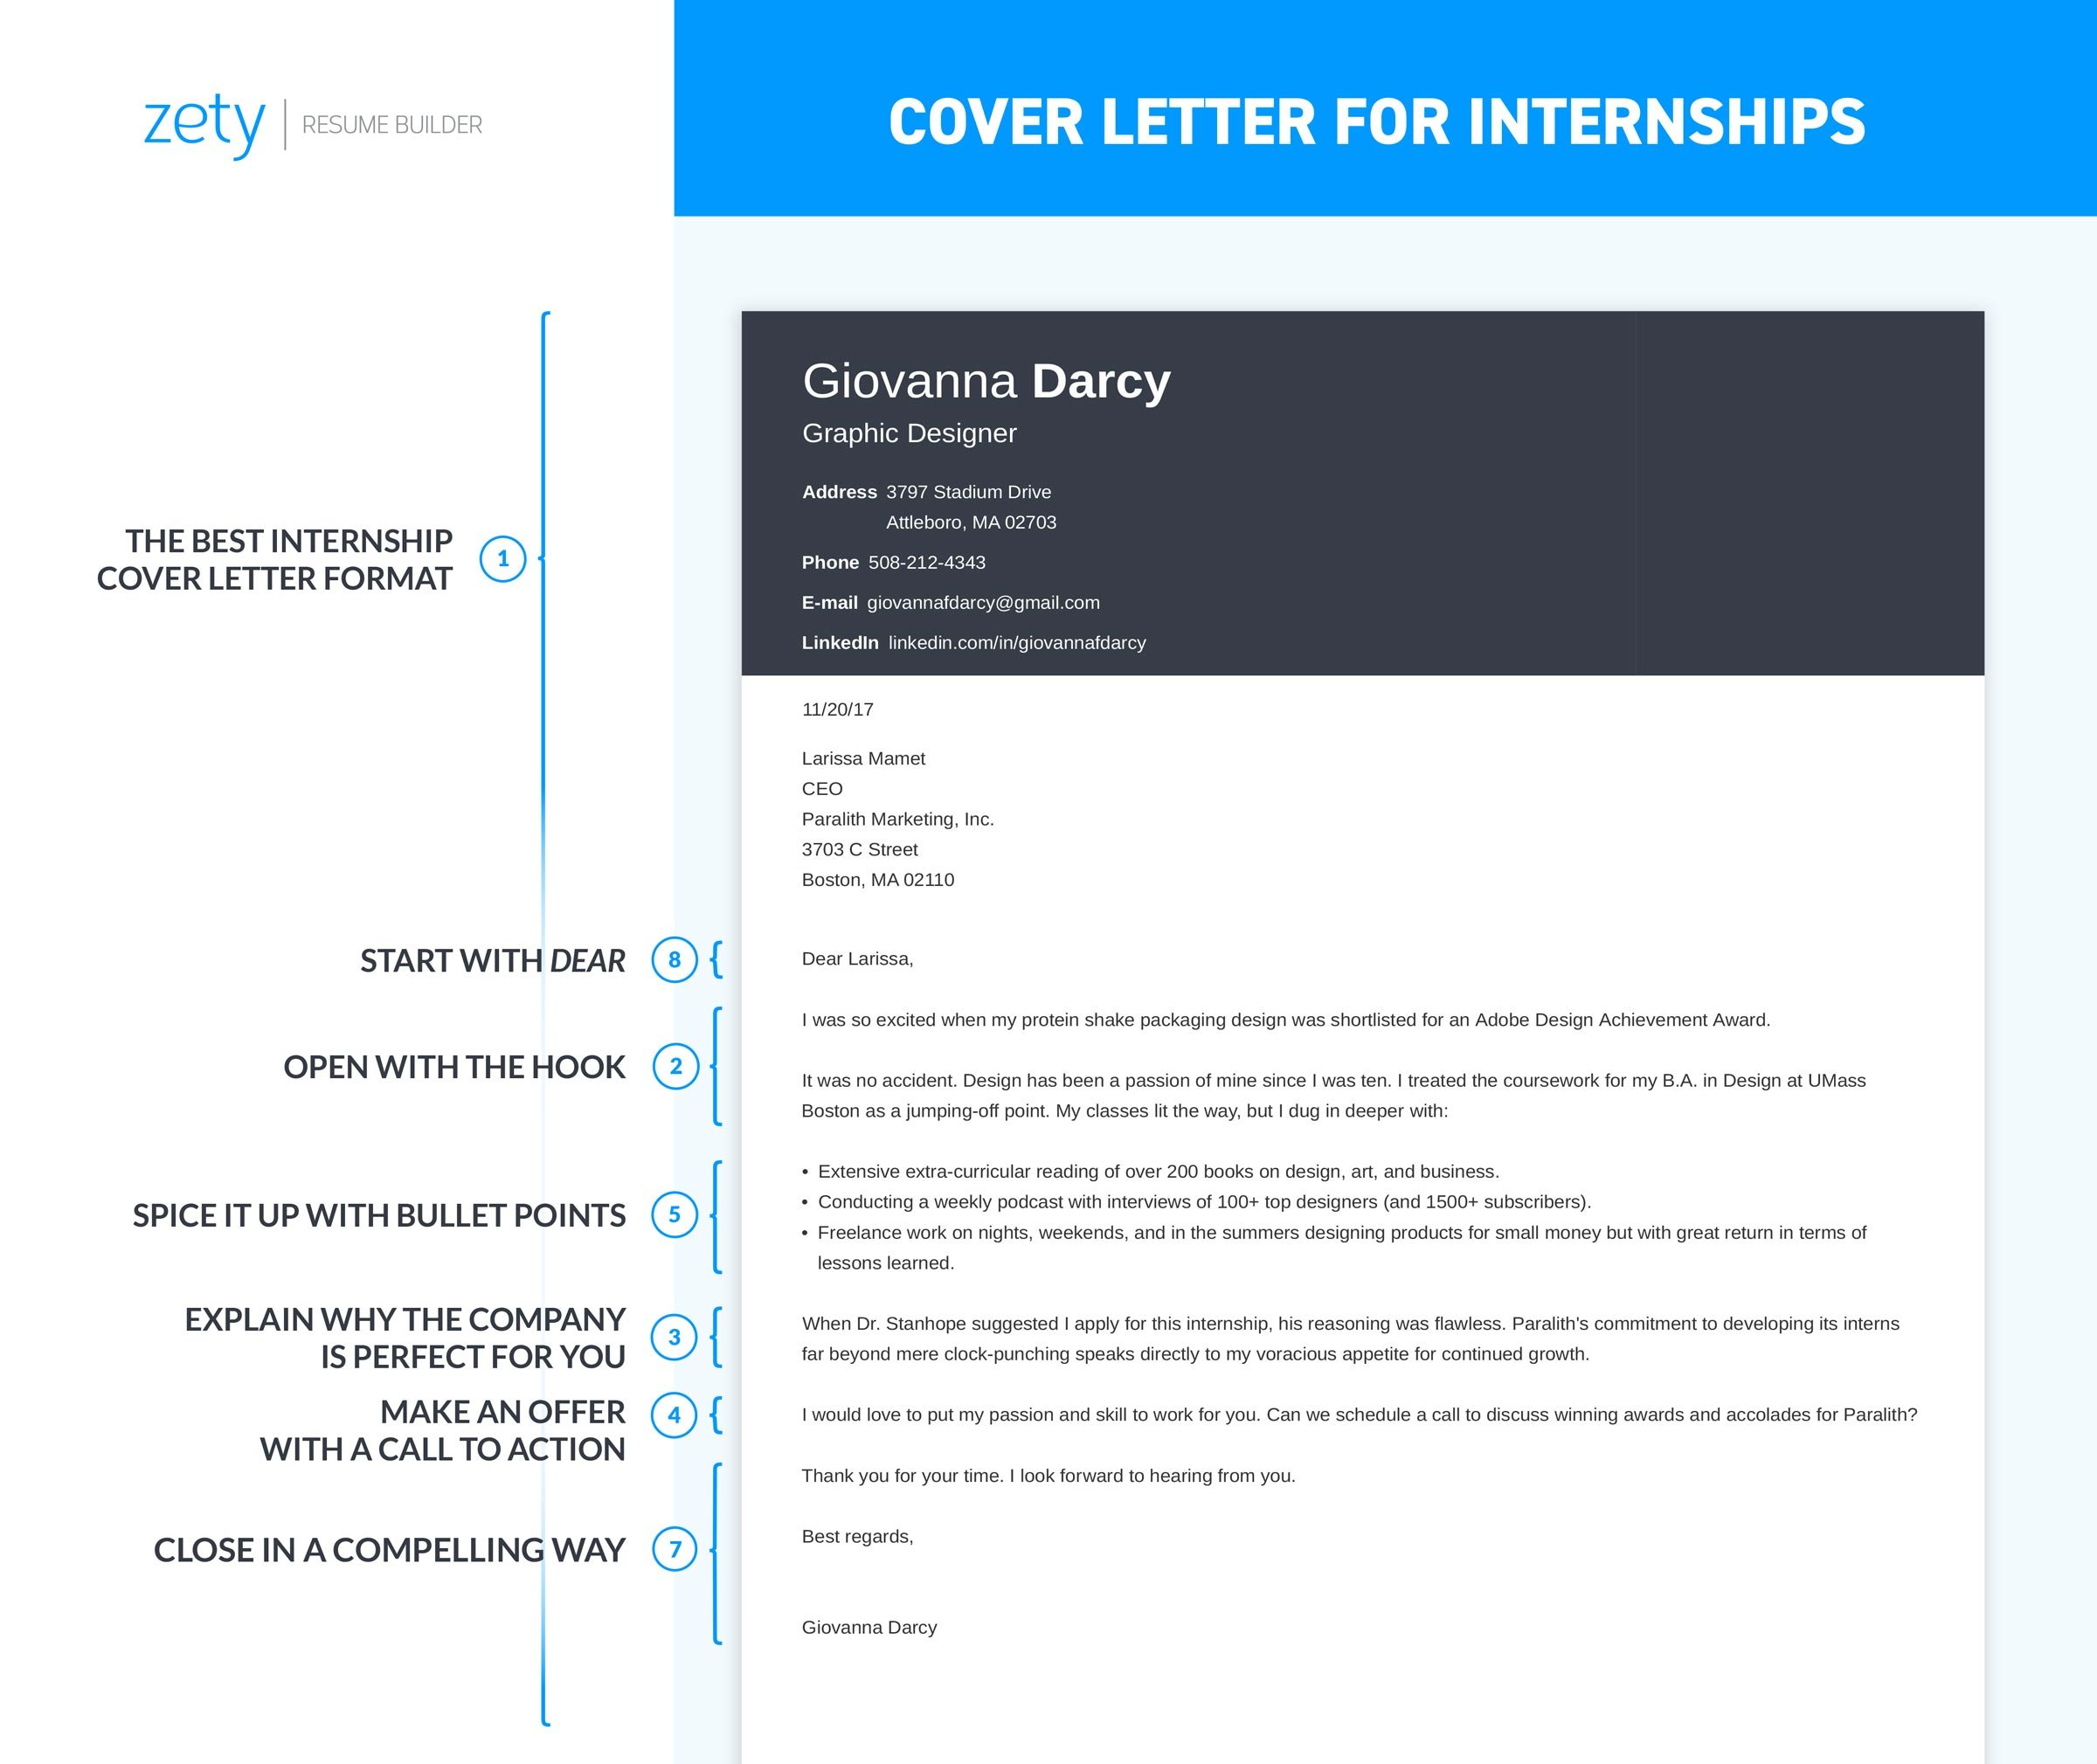 cover letter for oil and gas internship - how to write a cover letter for an internship 20 examples